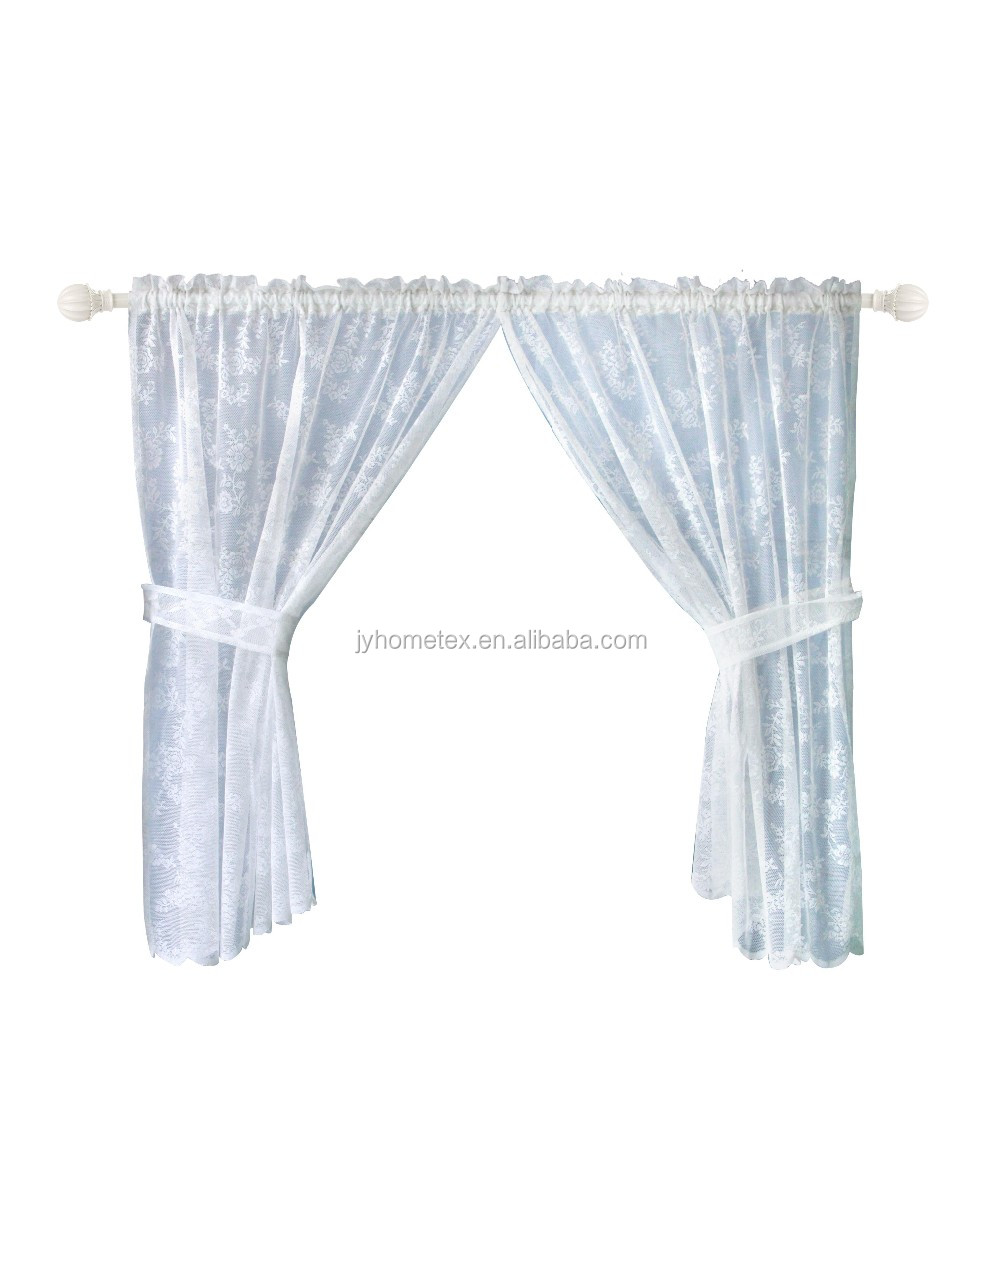 newest hot sale wholesale polyester cheap price lace cafe curtain/kitchen curtain 110*120cm